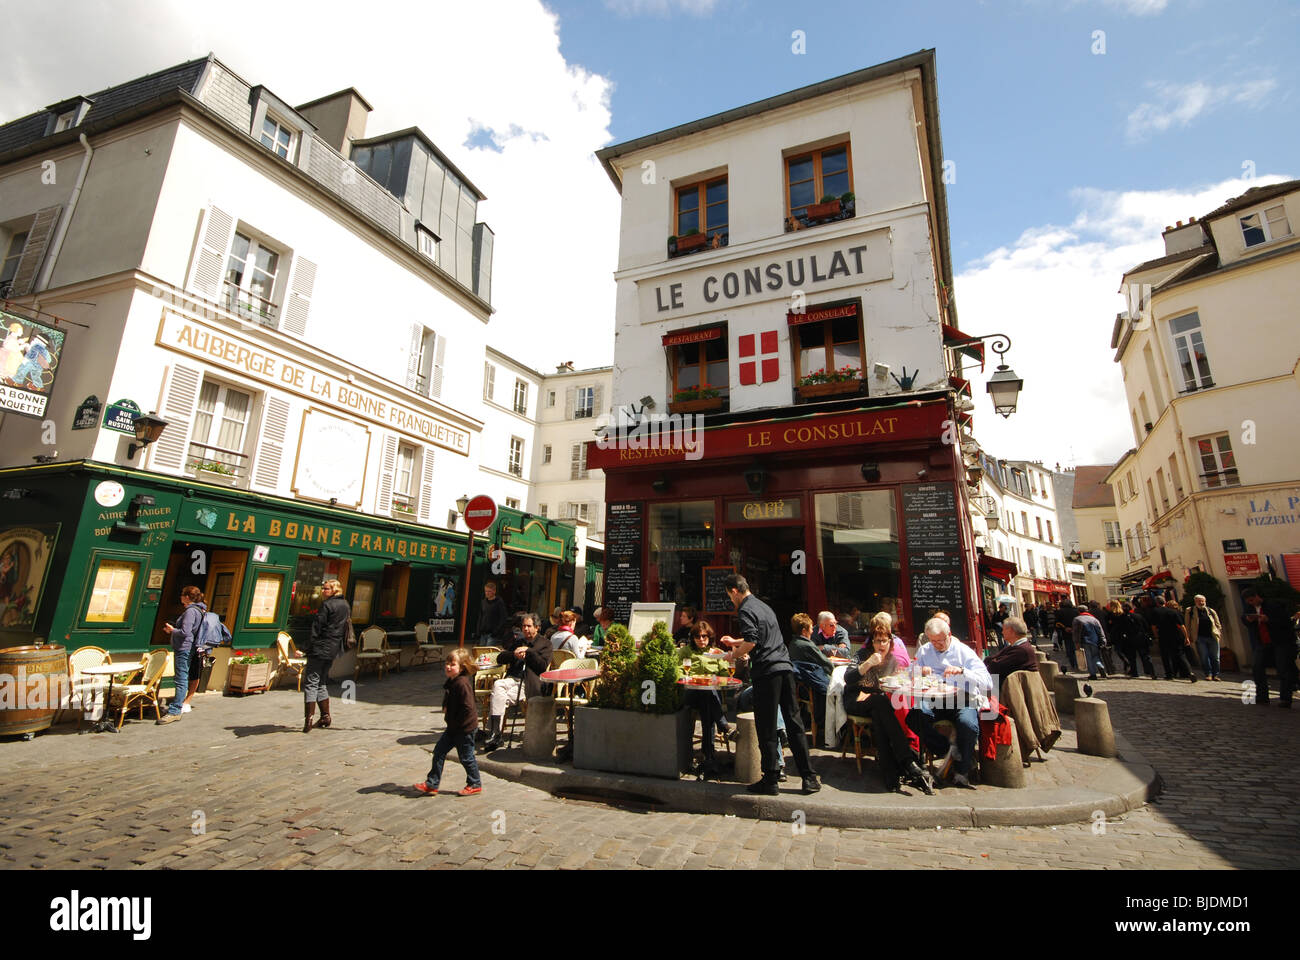 Restaurant le consulat montmartre paris france stock photo for Le miroir restaurant montmartre